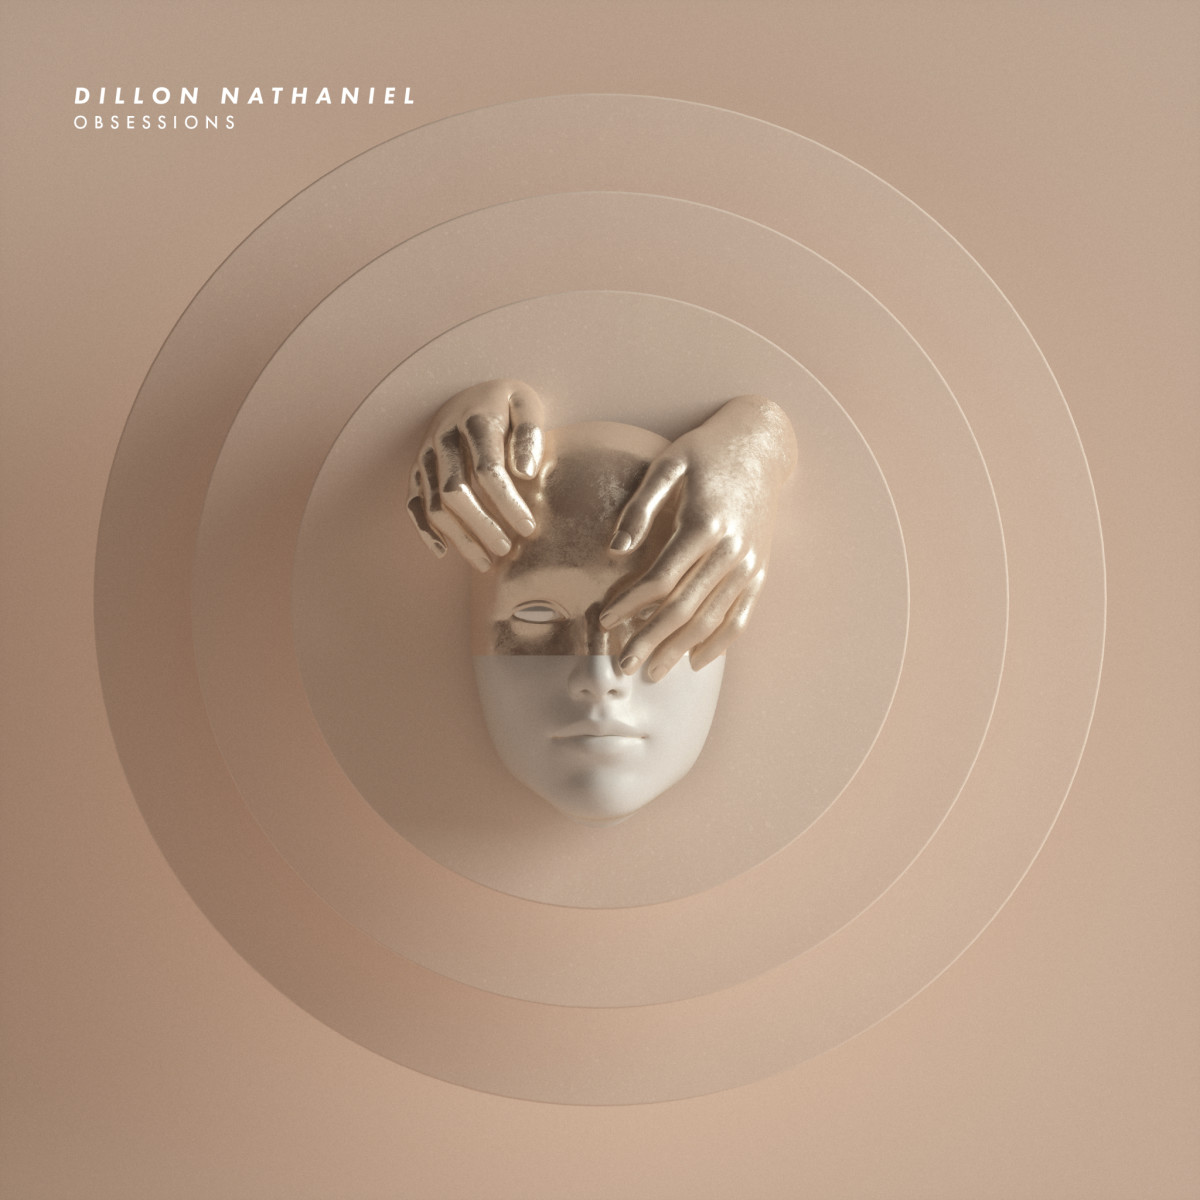 Dillon Nathaniel - Obsessions (Album Artwork for Release on Big Beat Records)